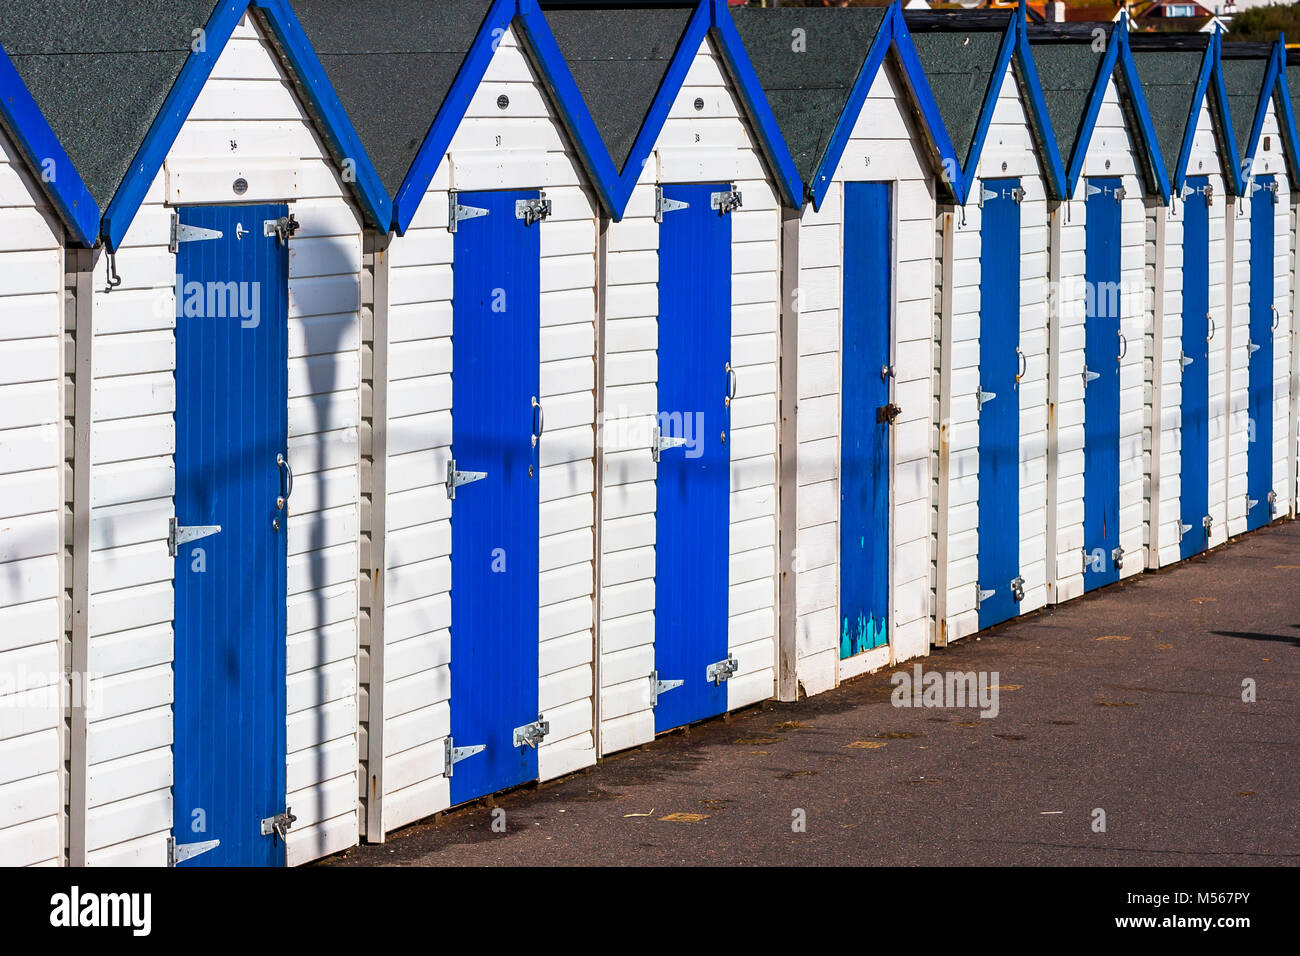 A row of beach huts on the Devon coast of England. - Stock Image